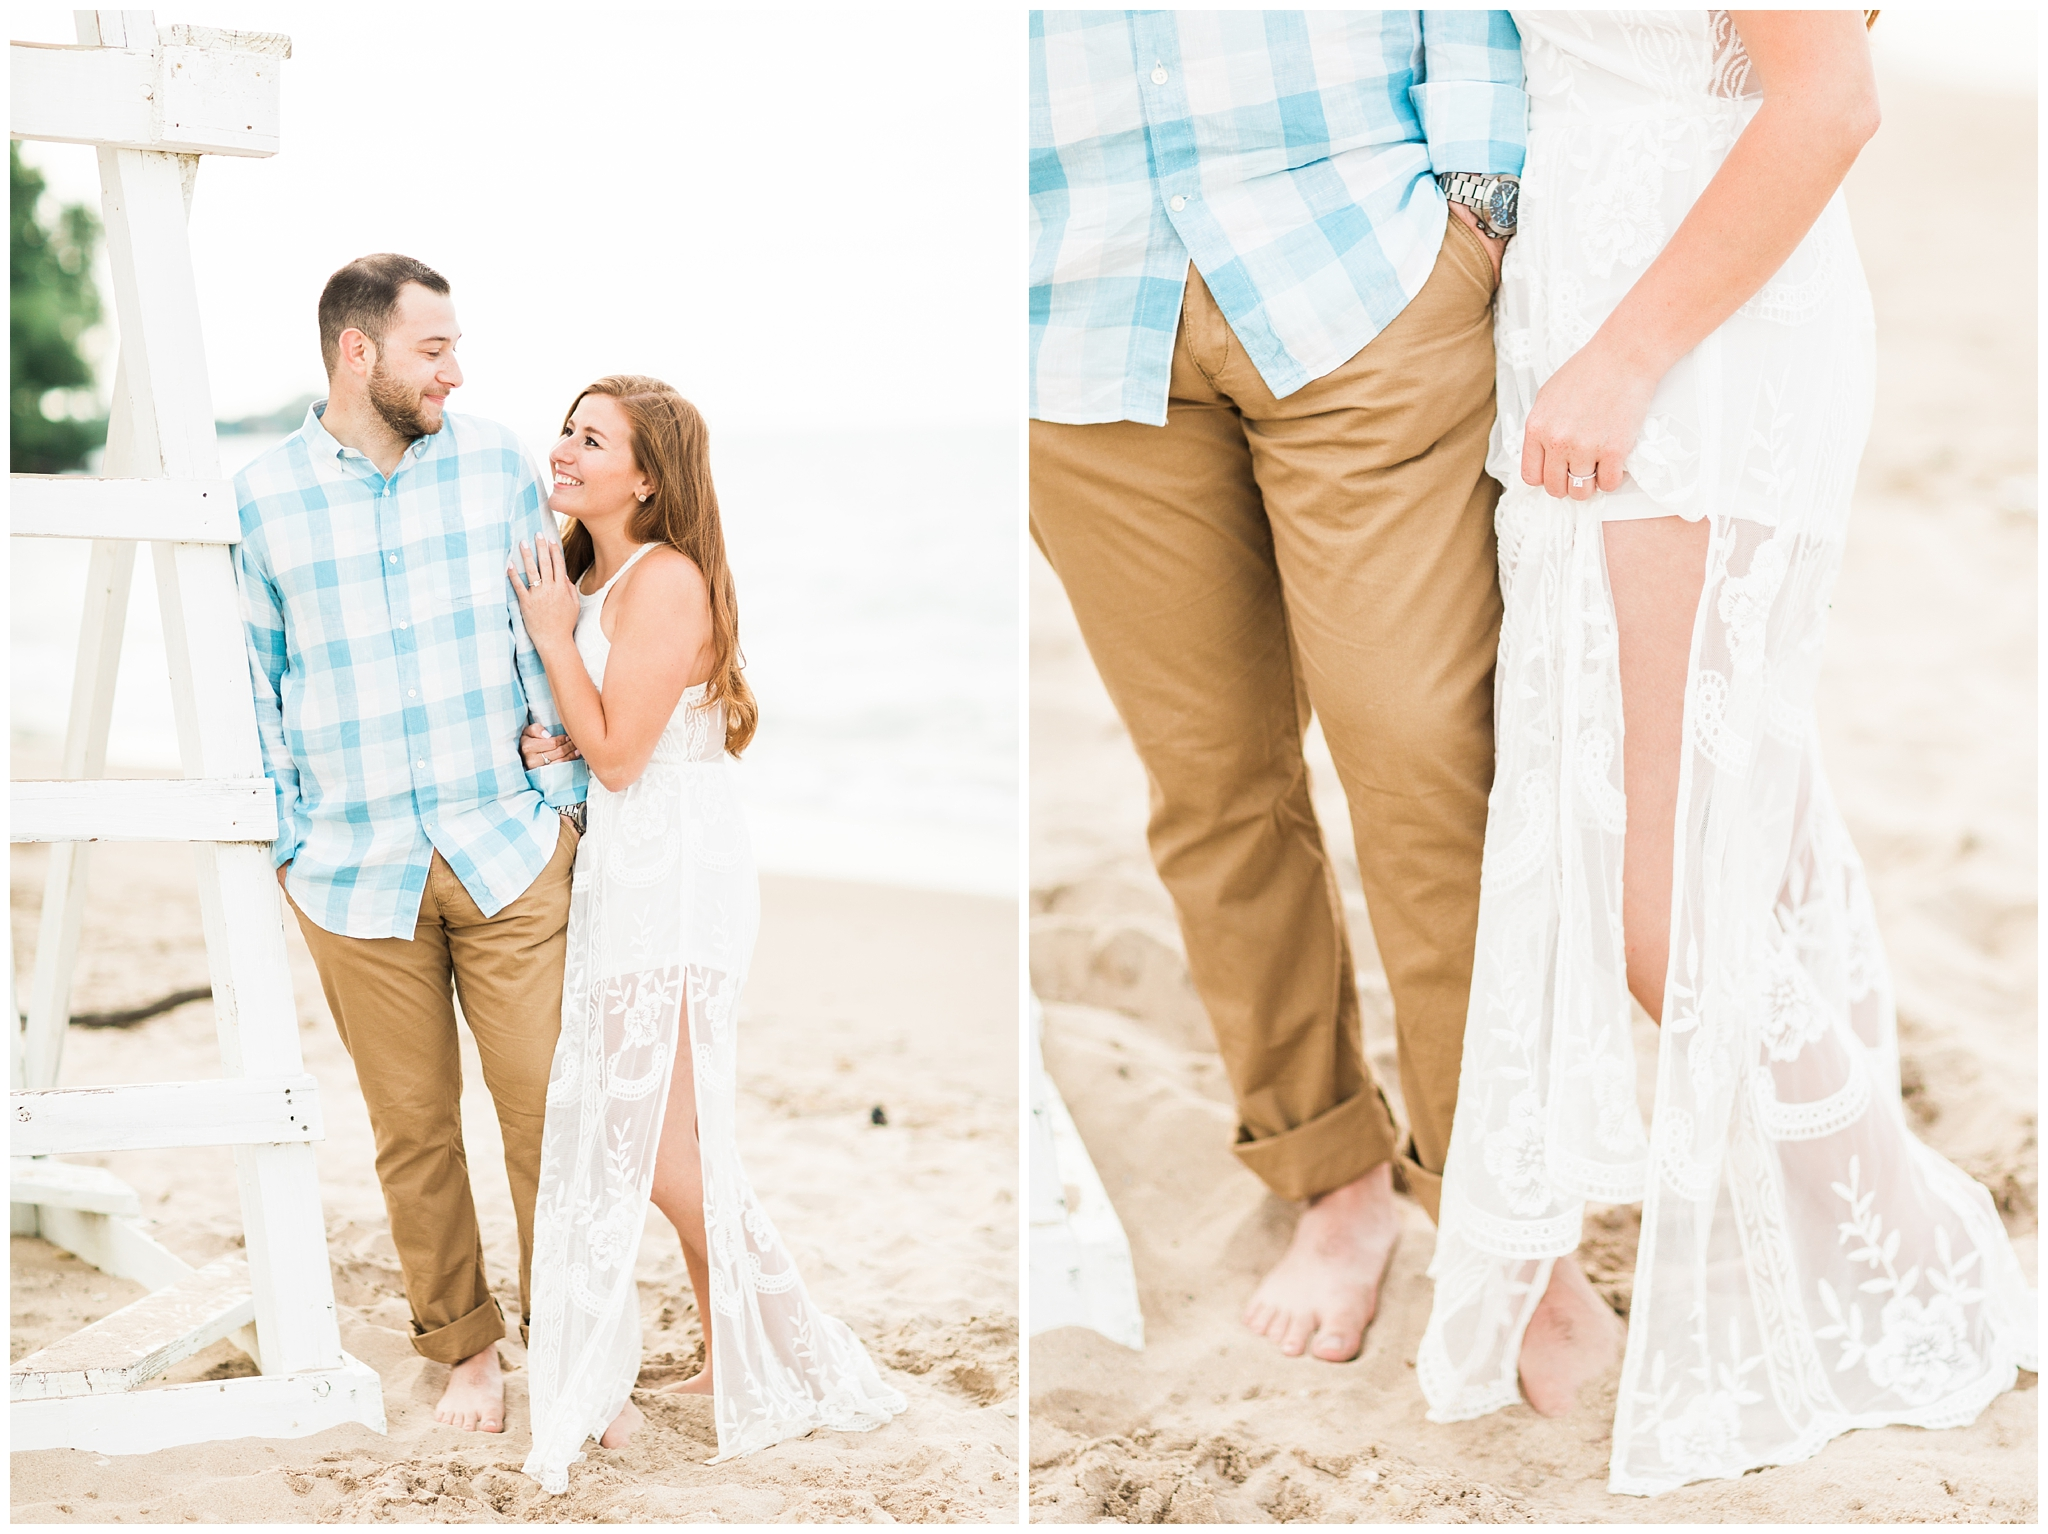 RebeccaHaleyPhotography_chicagoengagementsession_lakemichiganengagementsession_coloradoengagementphotographer_evanstonengagementphotographer_lighthousebeach_lighthousebeachengagementsession_0010.jpg